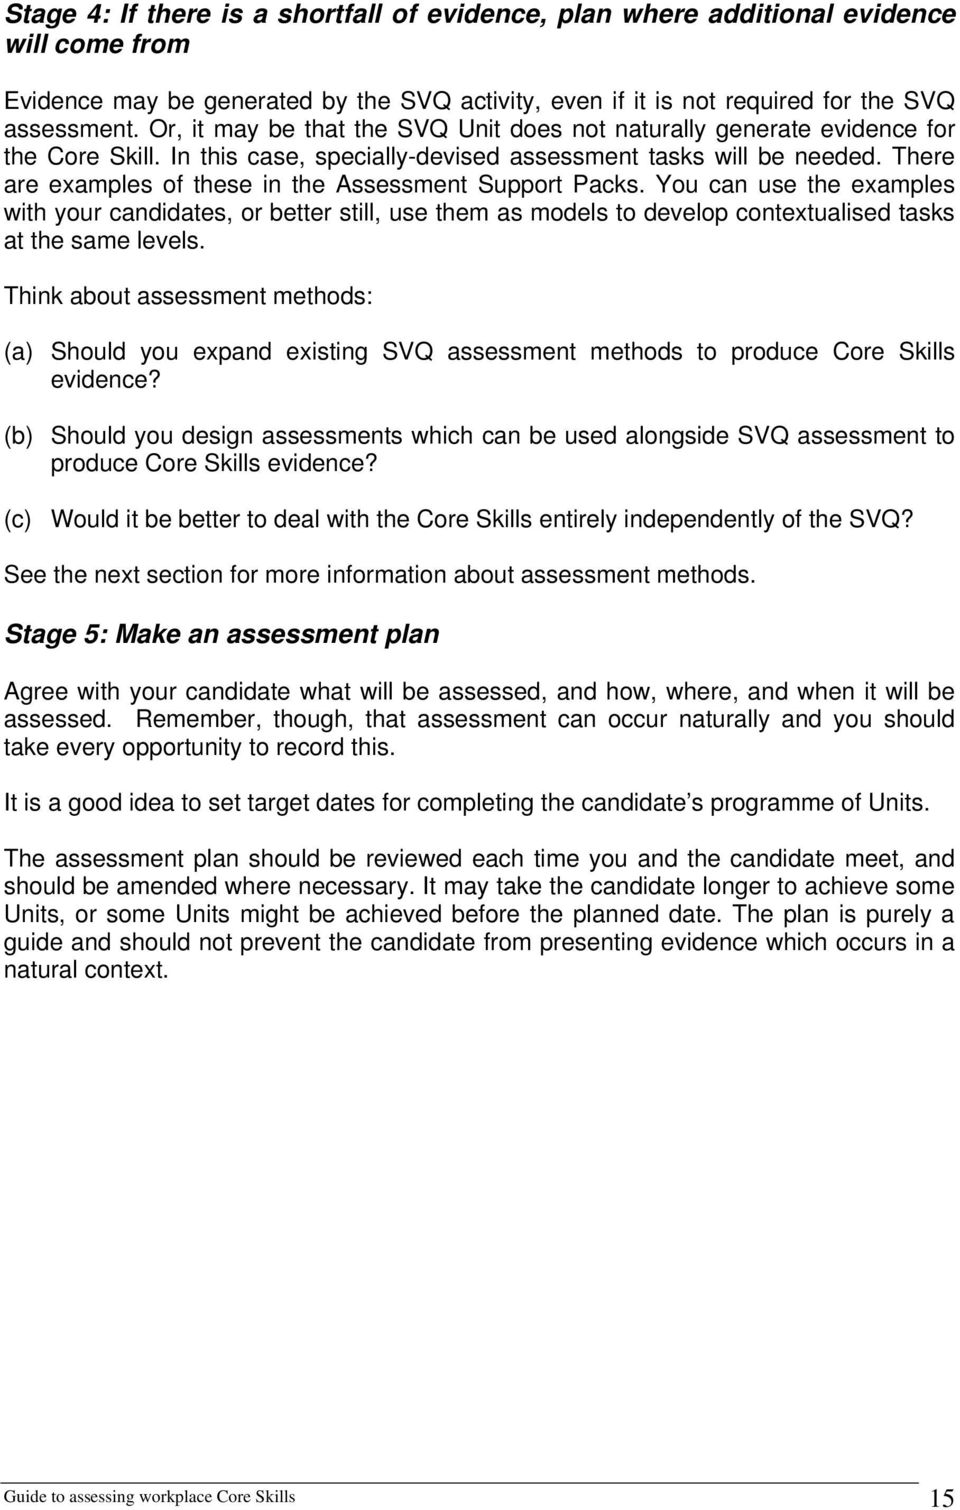 There are examples of these in the Assessment Support Packs. You can use the examples with your candidates, or better still, use them as models to develop contextualised tasks at the same levels.